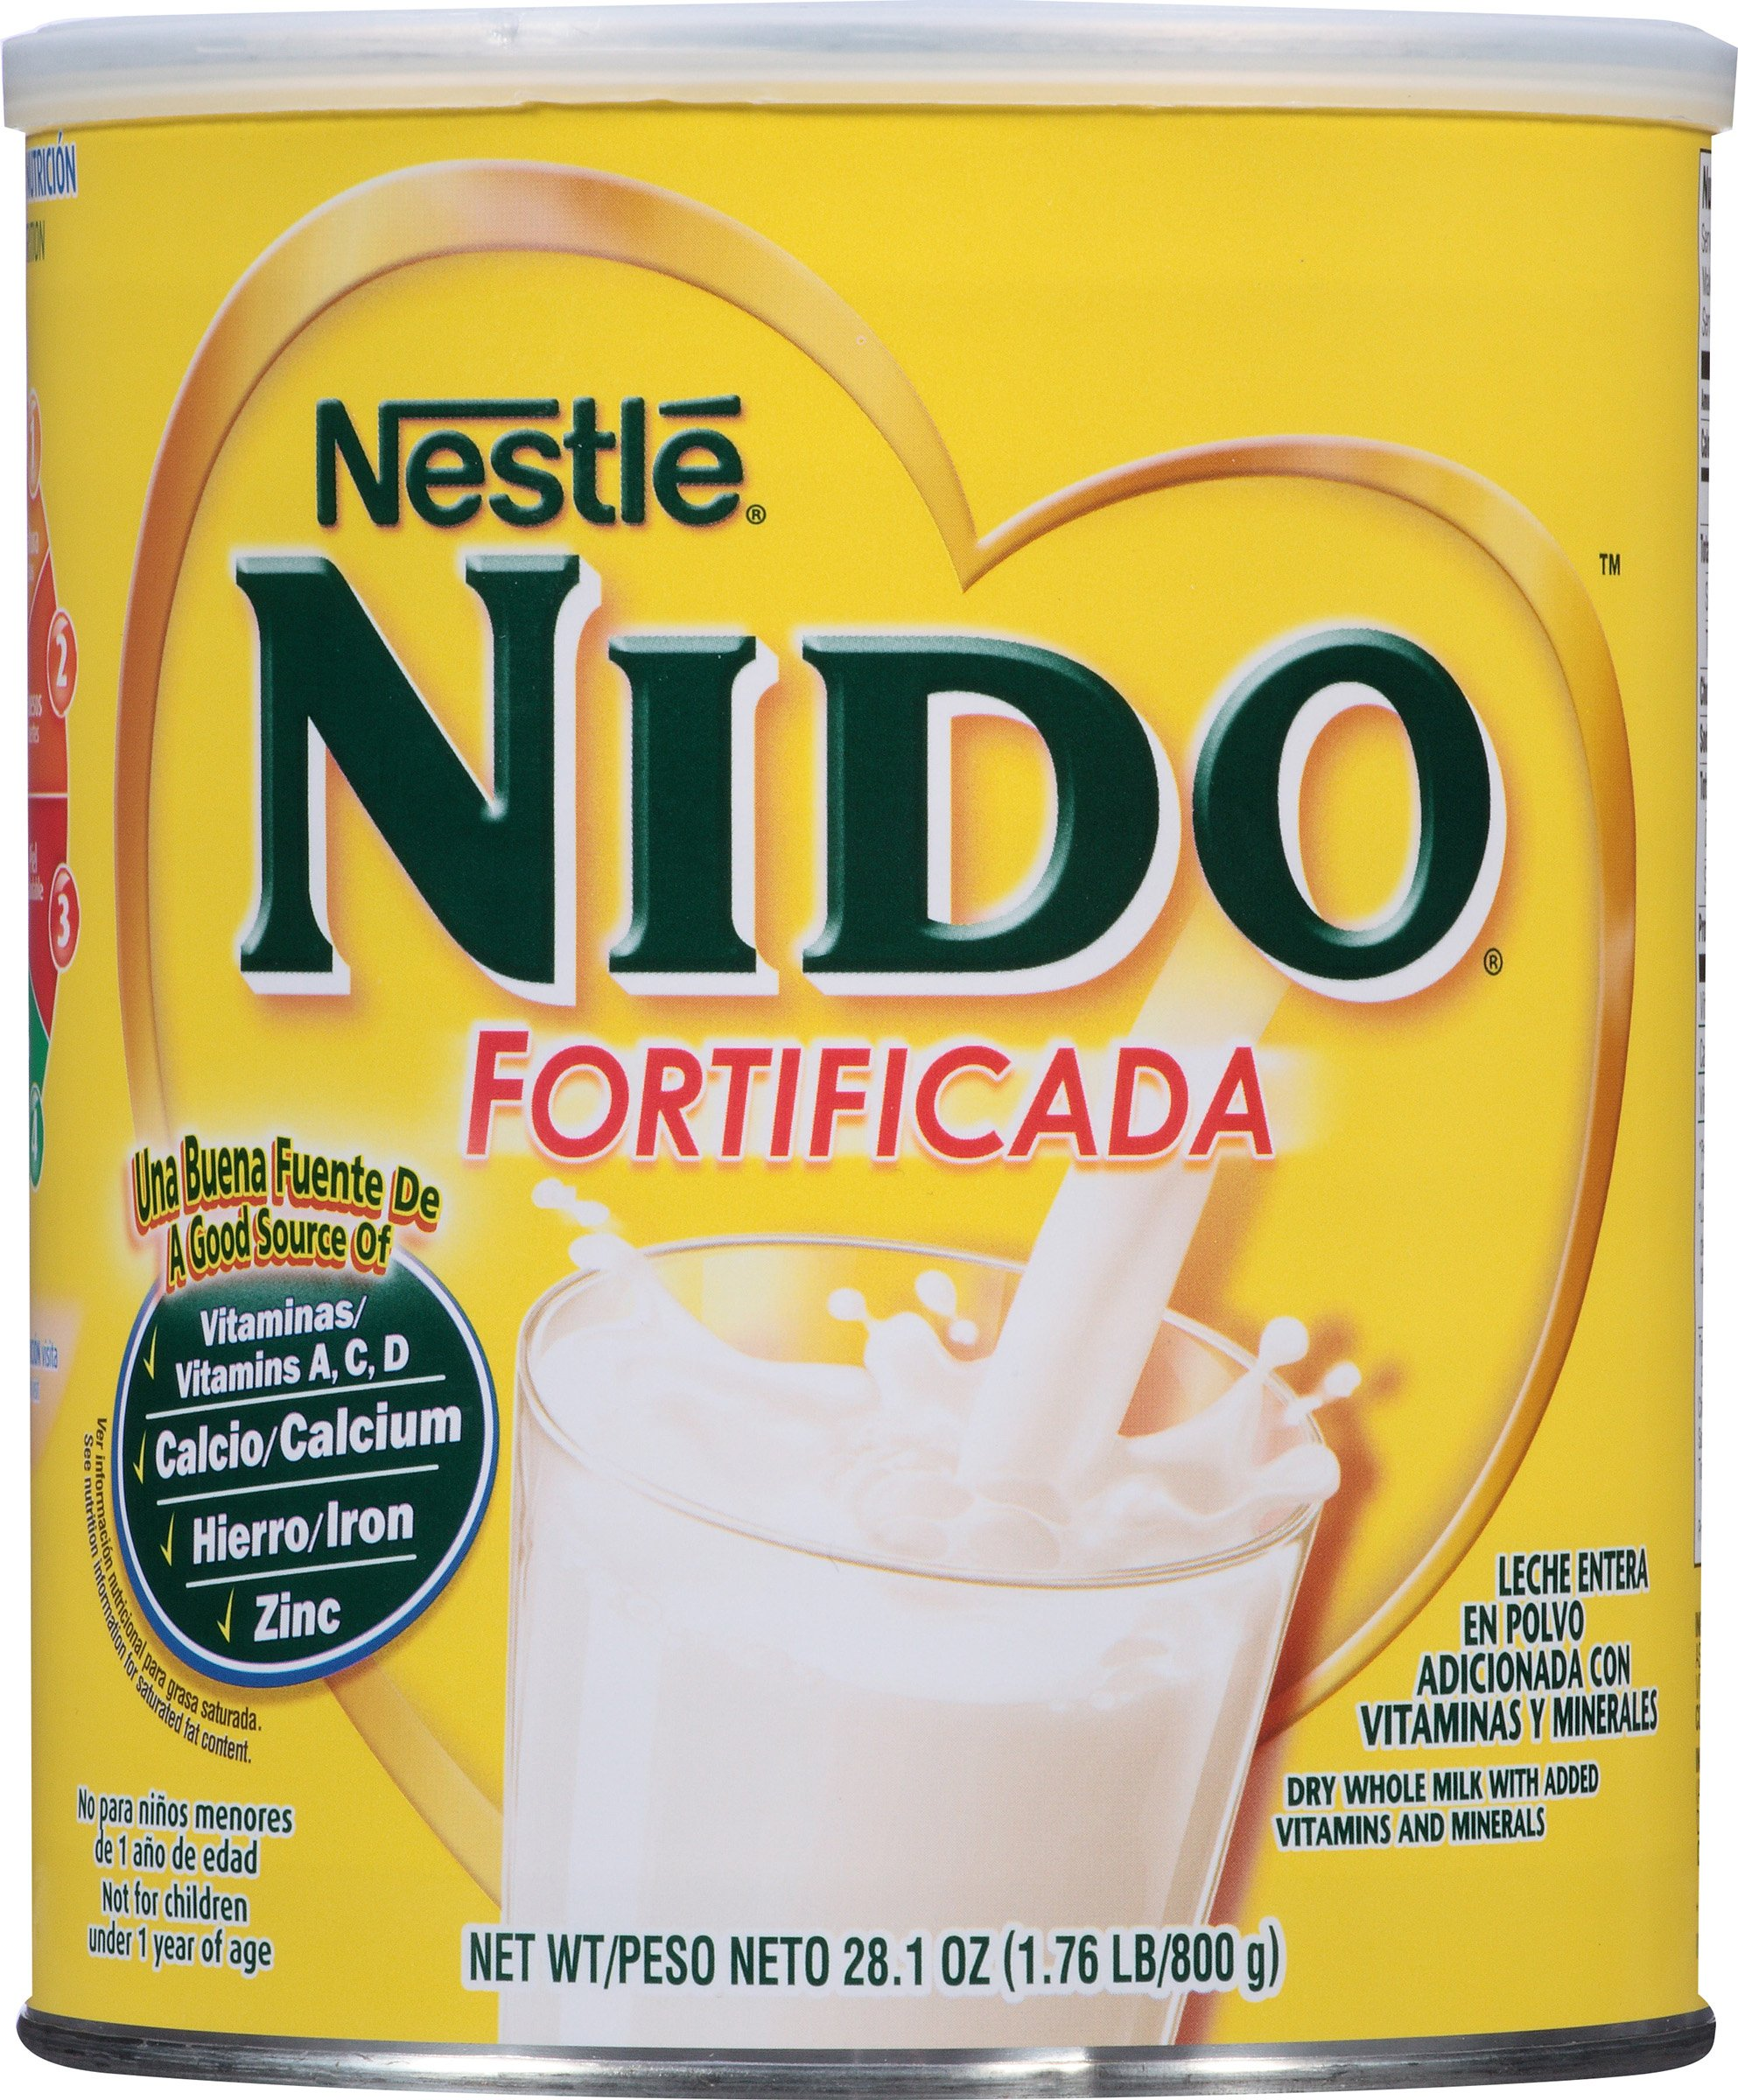 NESTLE NIDO Fortificada Dry Milk 28.1 Ounce. Canister by Nido